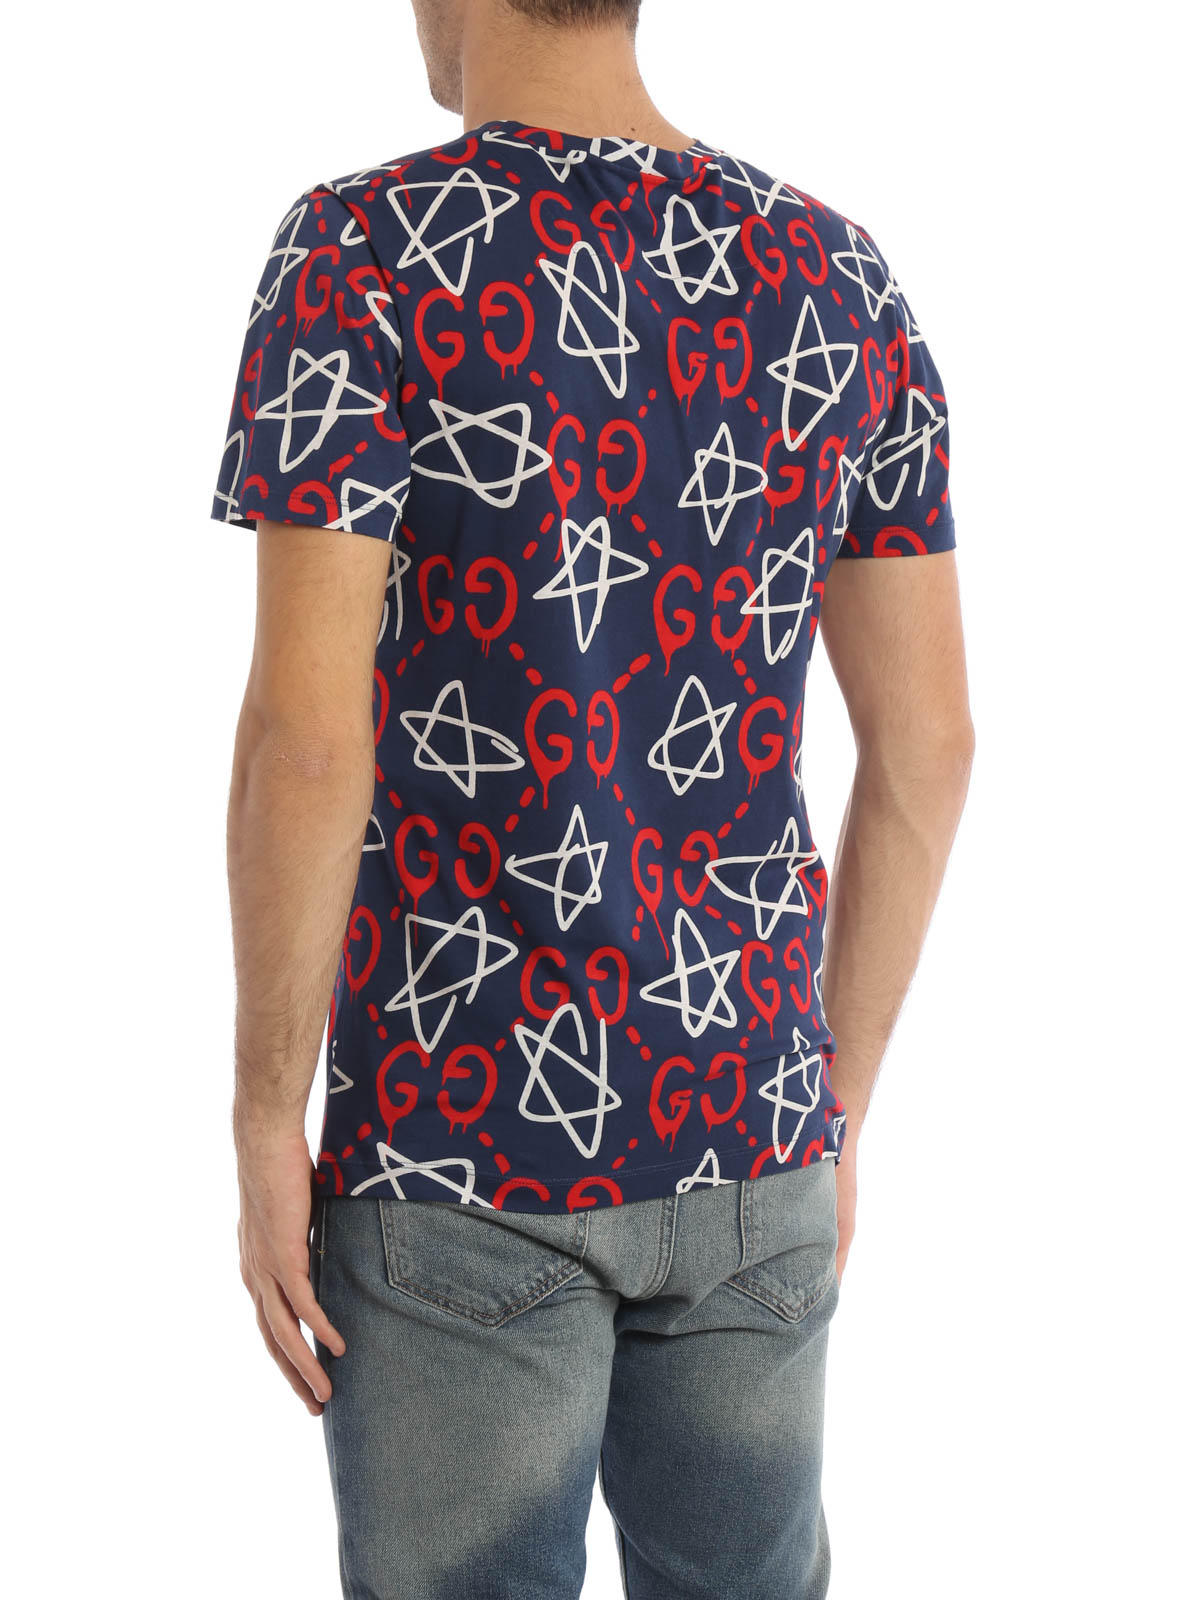 All over guccighost print t shirt by gucci t shirts ikrix for All over printing t shirts